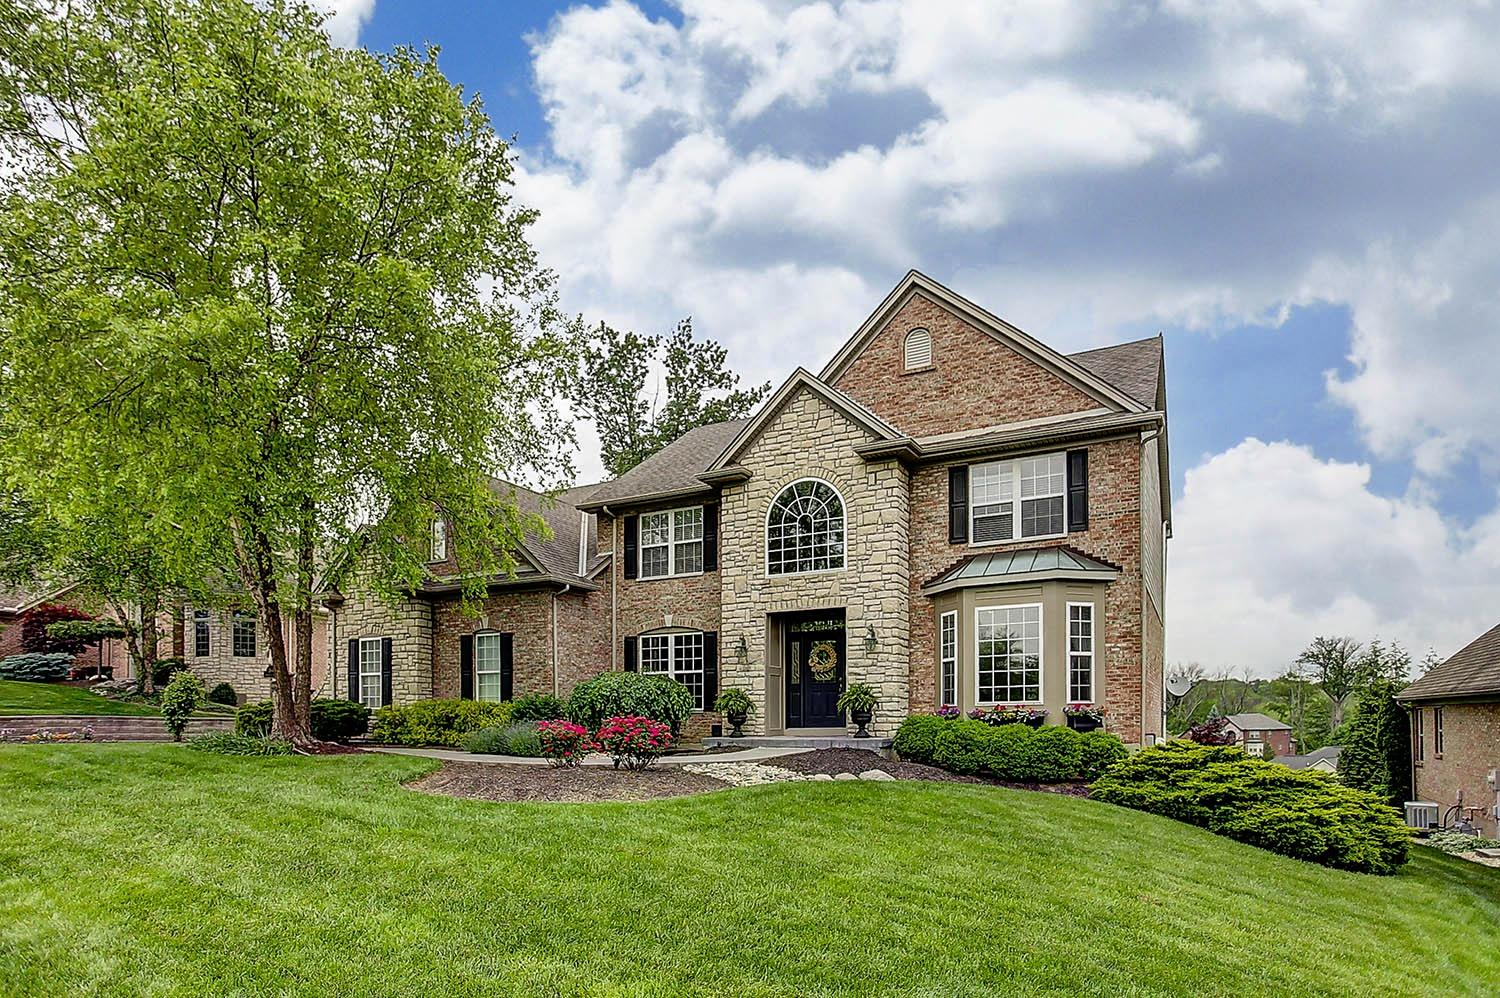 3841 Beacon Woods Dr Miami Twp. (West), OH